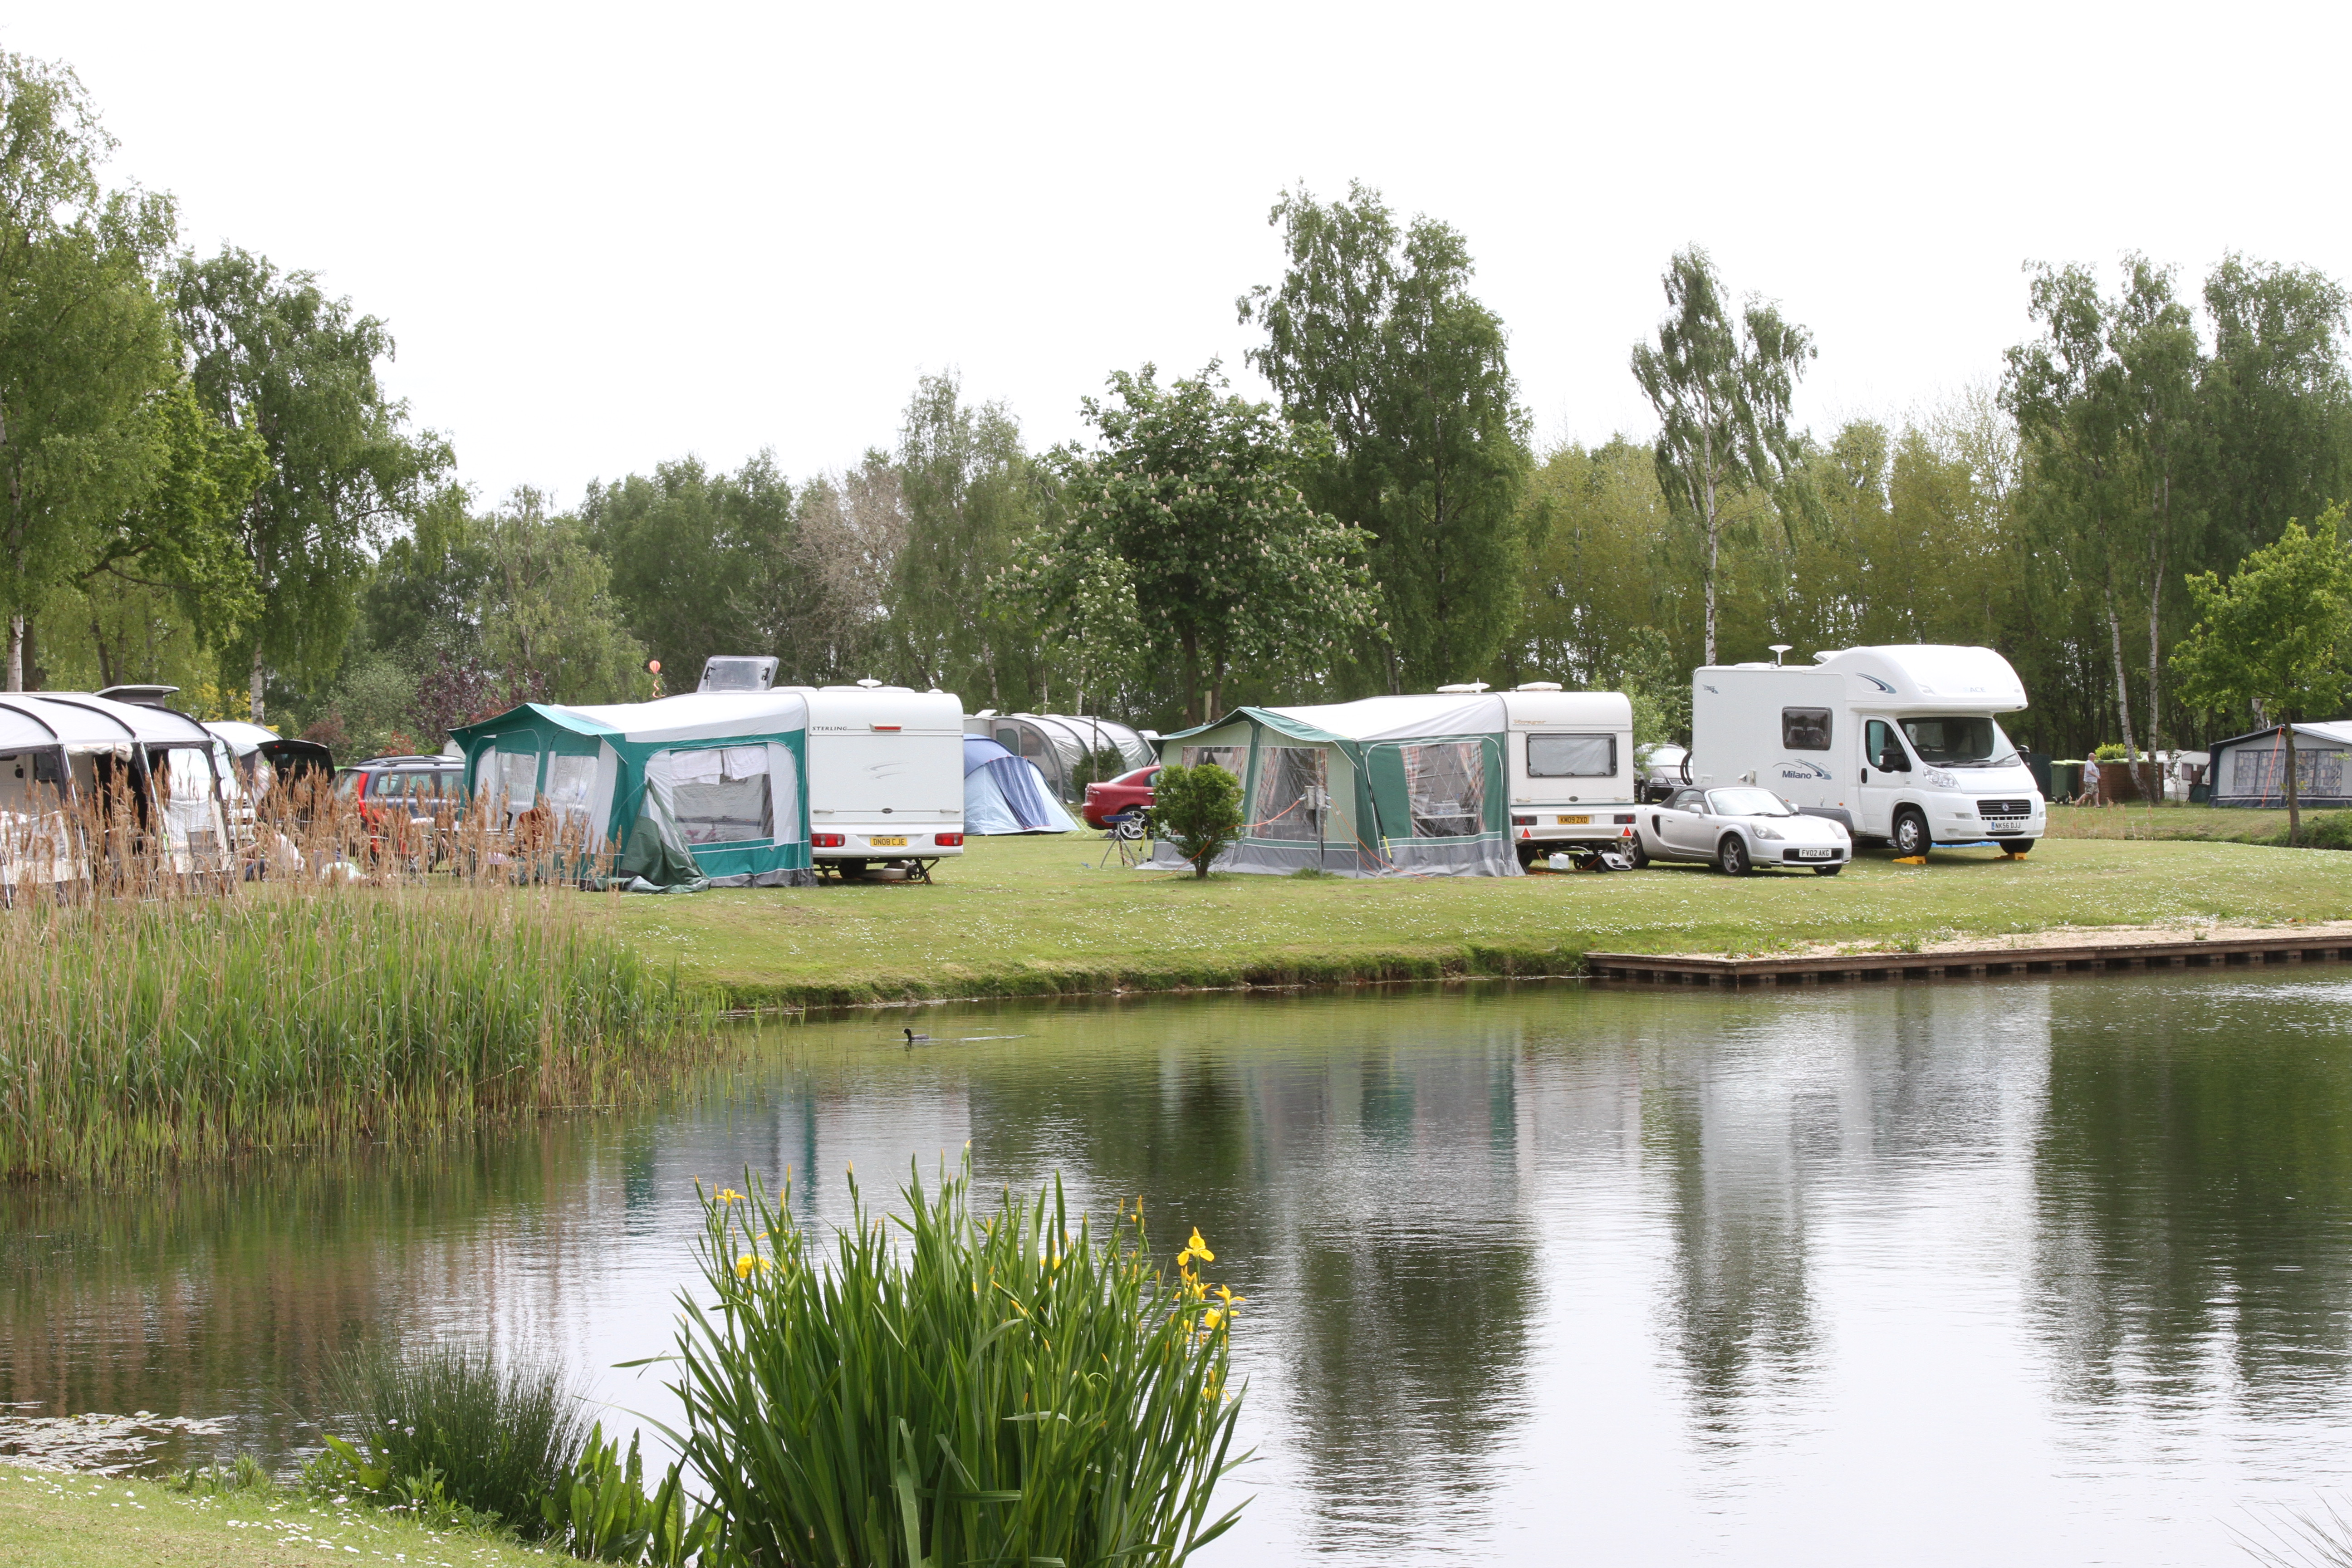 Caravans and lake